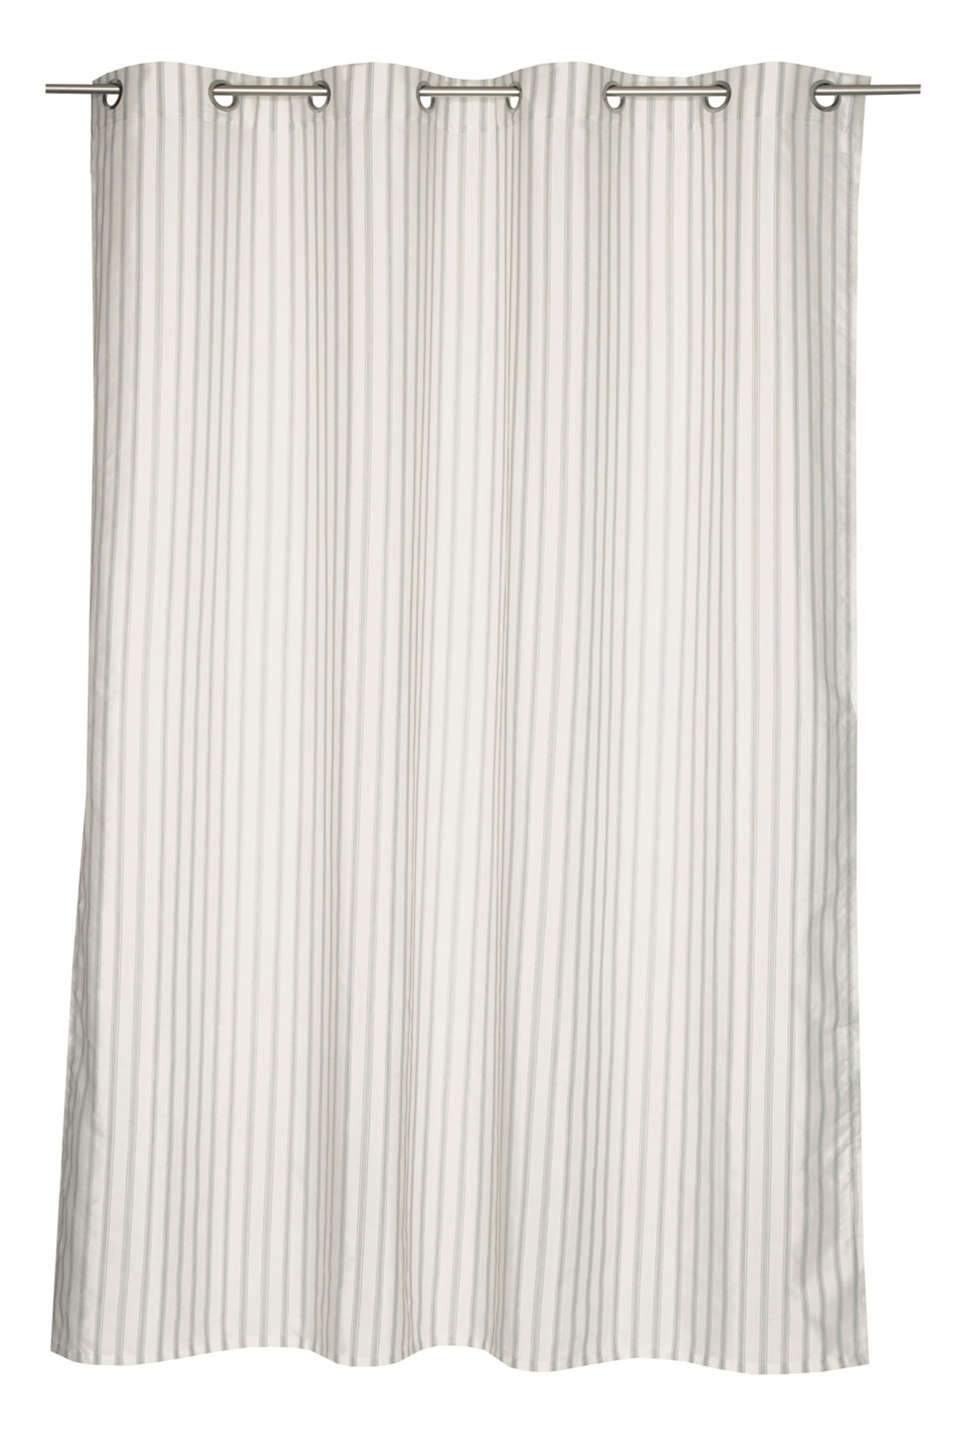 Esprit - Eyelet curtain with textured stripes and linen